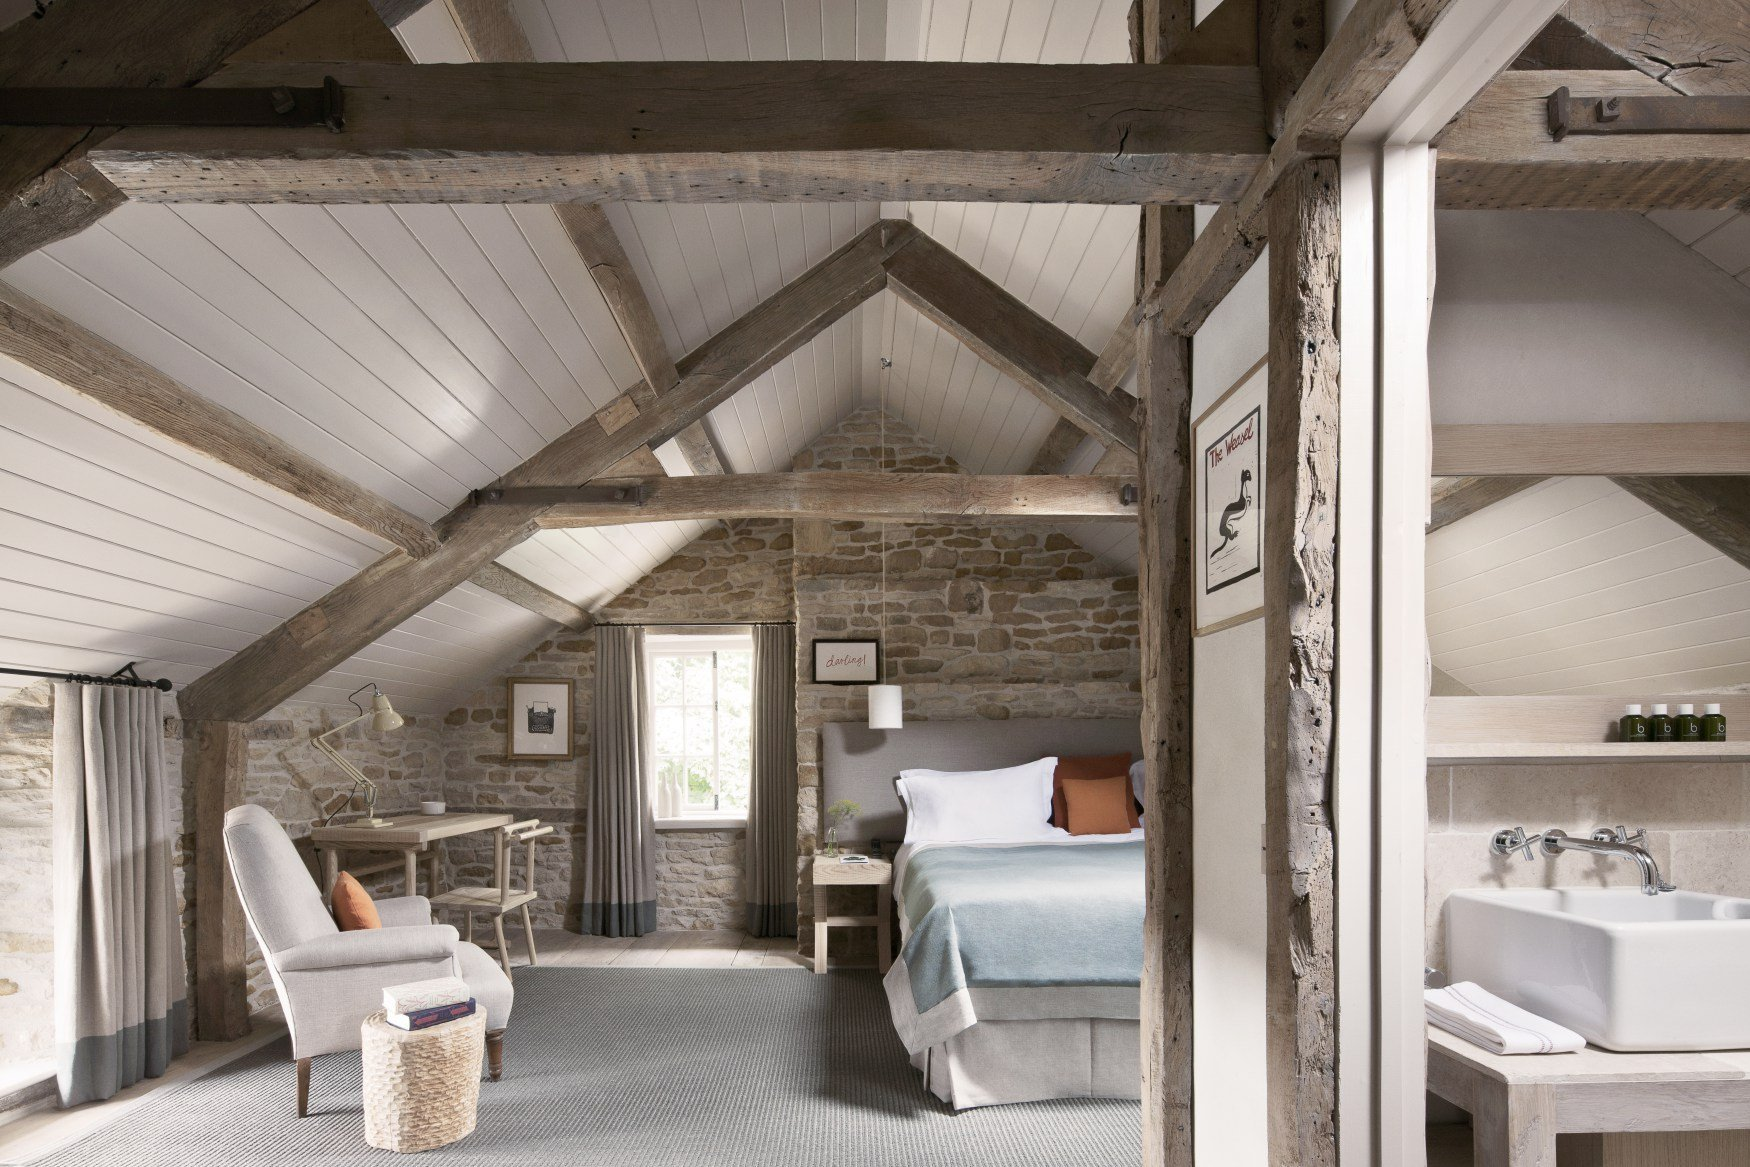 The Wild Rabbit, Kingham Pub with Rooms in Oxfordshire 12